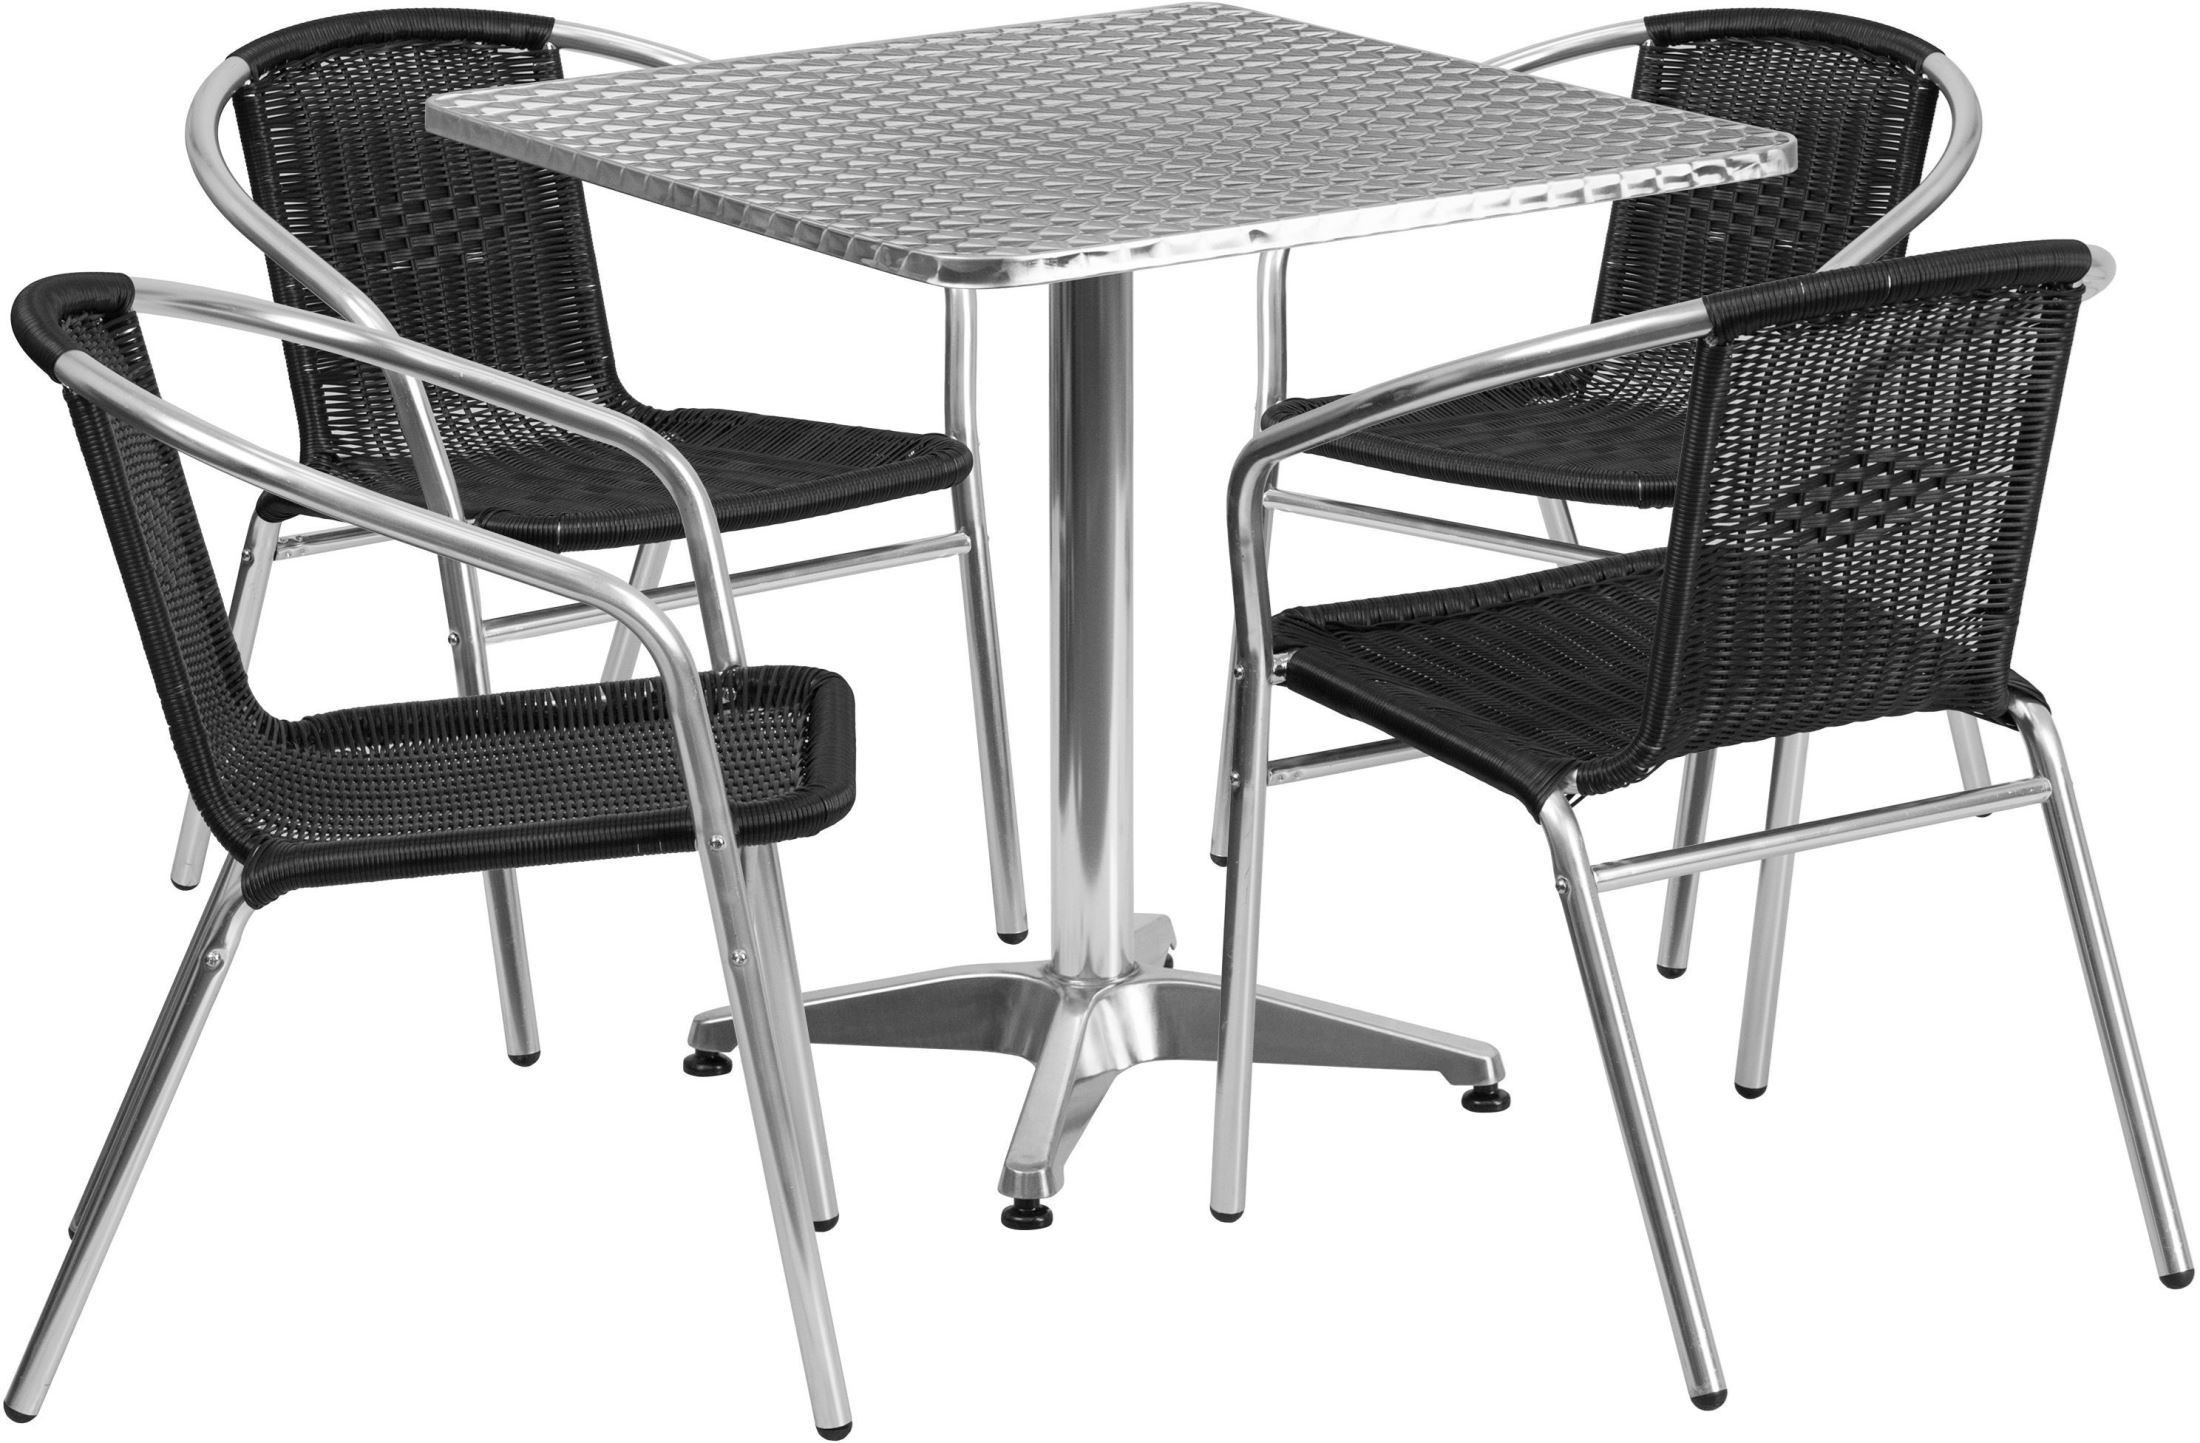 "Square Garden Table And 4 Chairs: 27.5"" Square Aluminum Indoor-Outdoor Table With 4 Black"